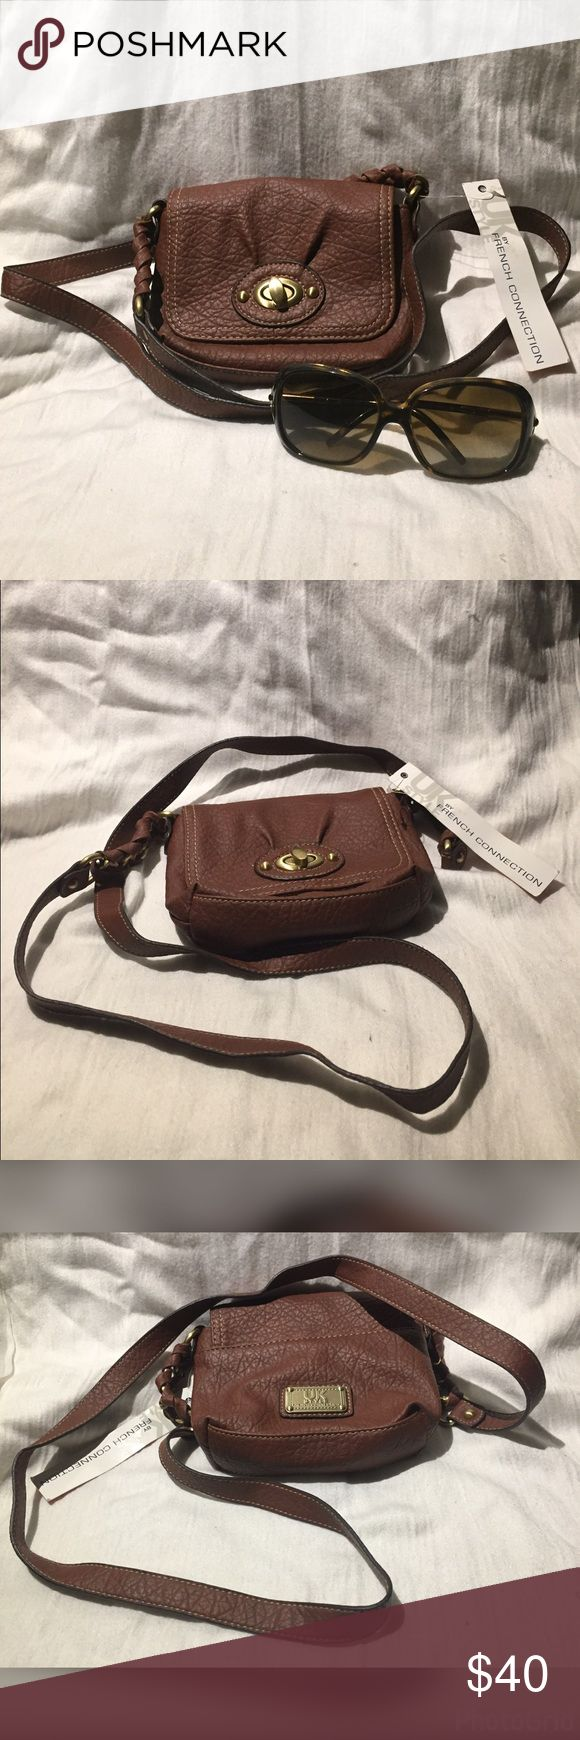 NWT French Connection Brown Cross-body Bag Purse NWT French Connection Brown Cross-body Bag Purse Cute  Found this while doing spring cleaning & it's a cute purse, perfect for a quick outing or a night on the town.  It's simple design w/ the turn turn-lock opening makes this easy to pair w/ jeans or flowery dress.  Take great w/ a pair of sunglasses &  your ready to enjoy the summer days to come.  PLEASE NOTE: Burberry Sunglasses is not included in listing & there is a separate listing for…